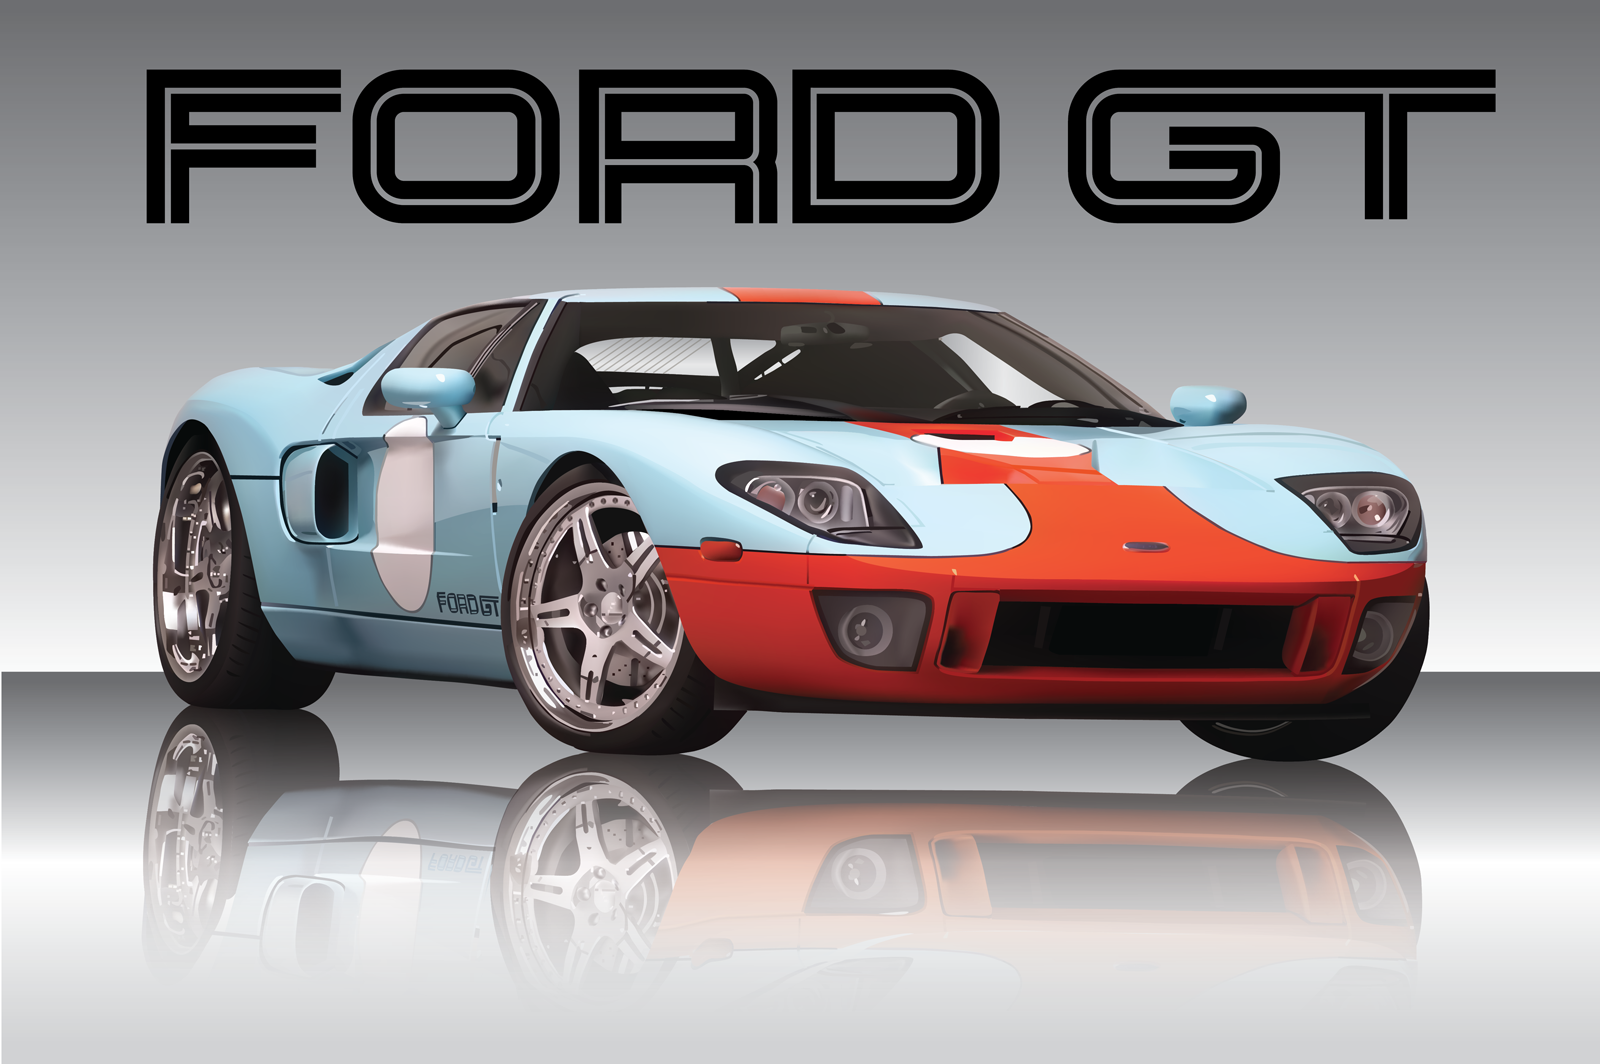 the gallery for gt ford logo no background